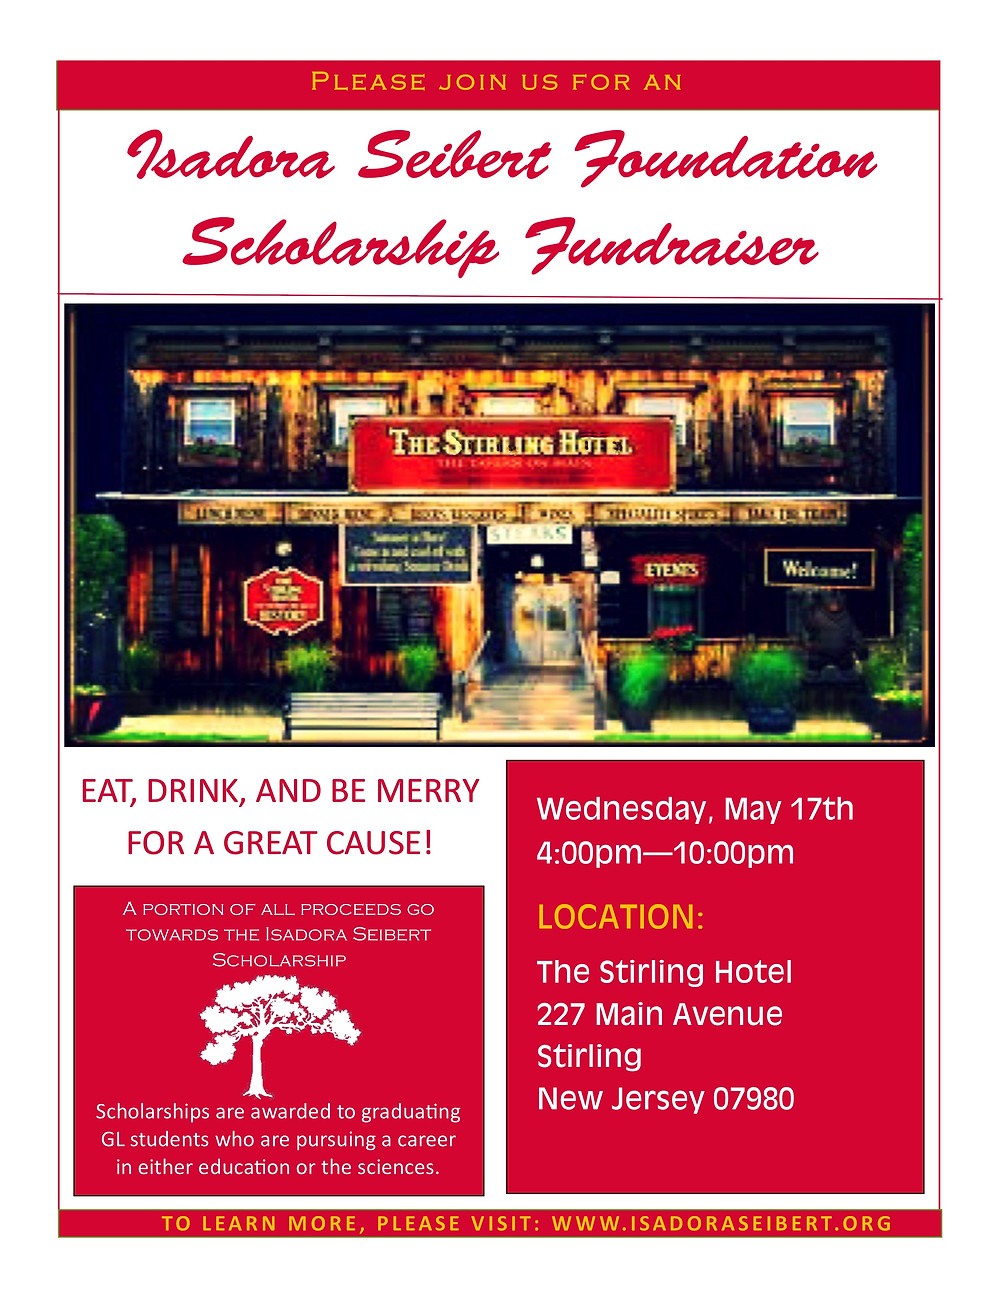 SAVE THE DATE! Stirling Hotel Community Supper on May 17th (4-10 PM) will be donating proceeds from the evening to the Isadora Seibert Scholarship Fund. The scholarship is awarded to graduating GLHS seniors pursuing careers in science or education. Isadora Seibert was a science teacher, coach, and club advisor at GL who passed away in 2014 at the age 25. Since 2014, 14 graduating seniors have benefited from the scholarship. To learn more about the Isadora Seibert Foundation, visit www.isadoraseibert.org. Thank you in advance for your support.